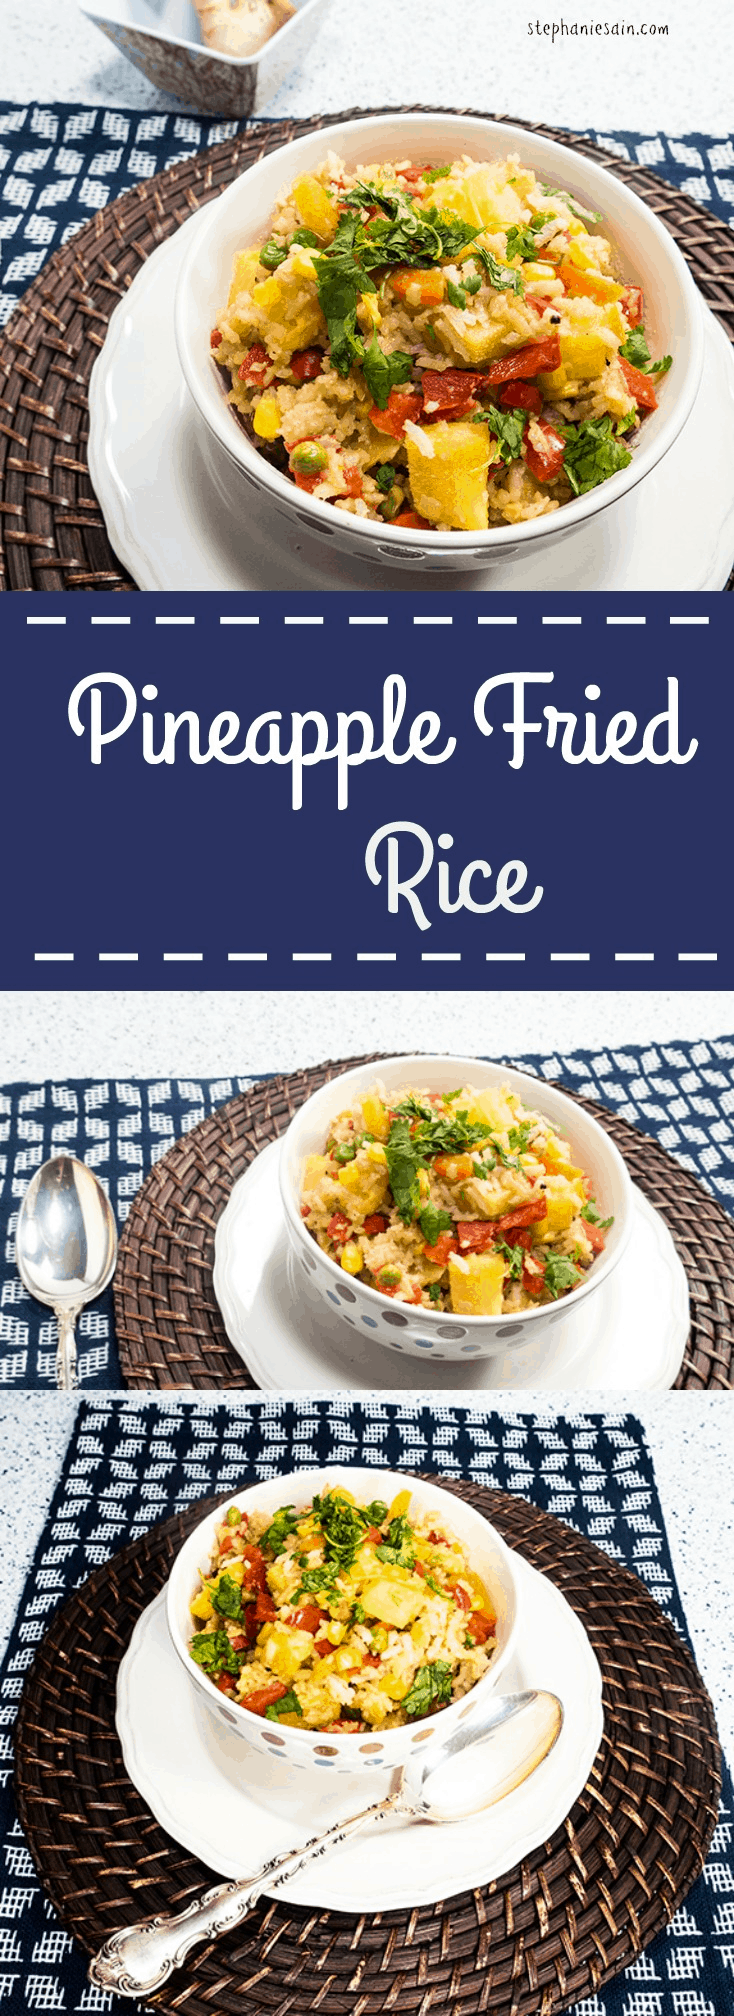 Pineapple Fried Rice is a healthy version of take out fried rice that is vegetarian and gluten free